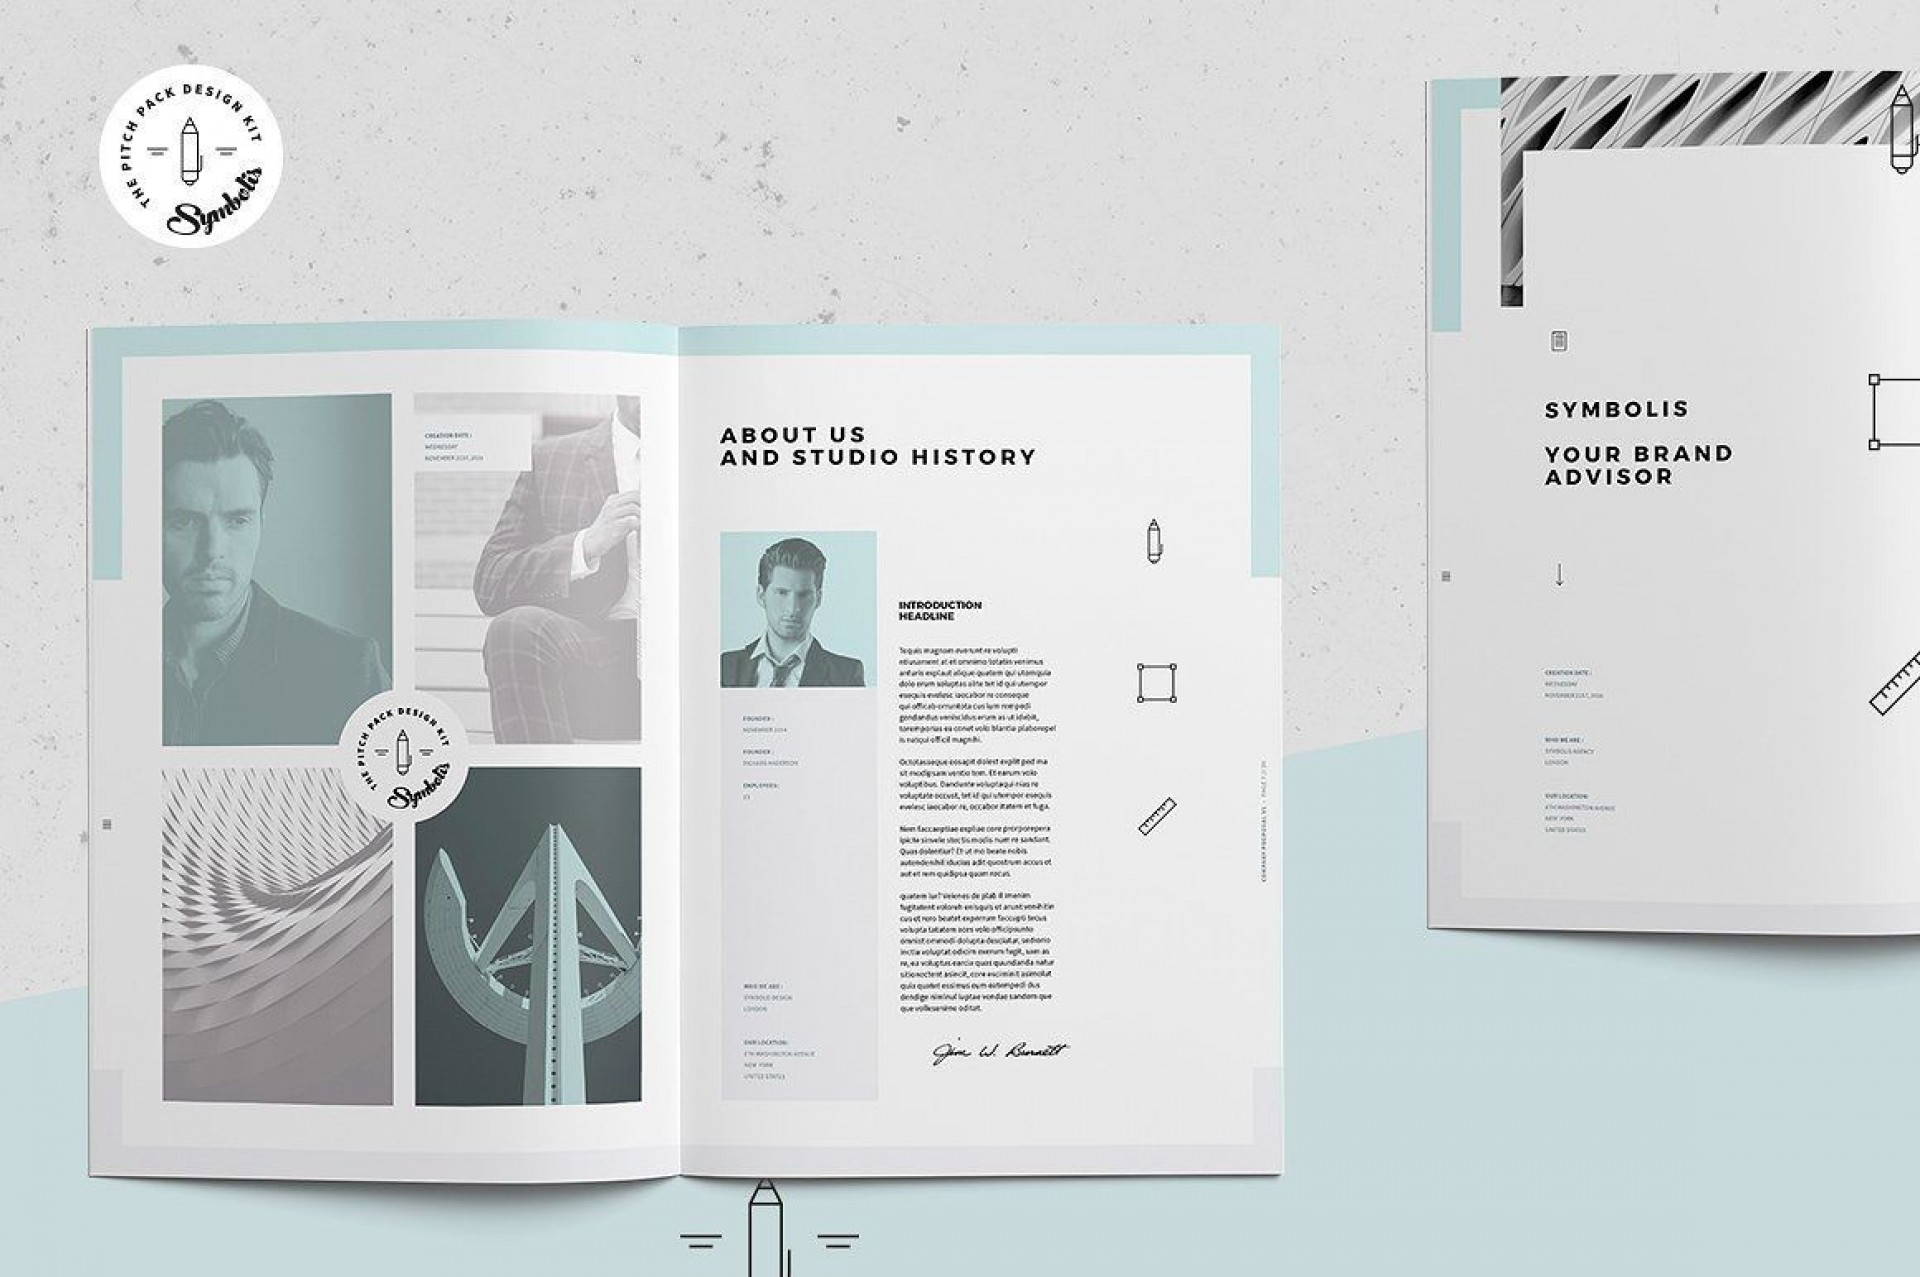 009 Sensational Graphic Design Proposal Template Indesign Picture  Free1920